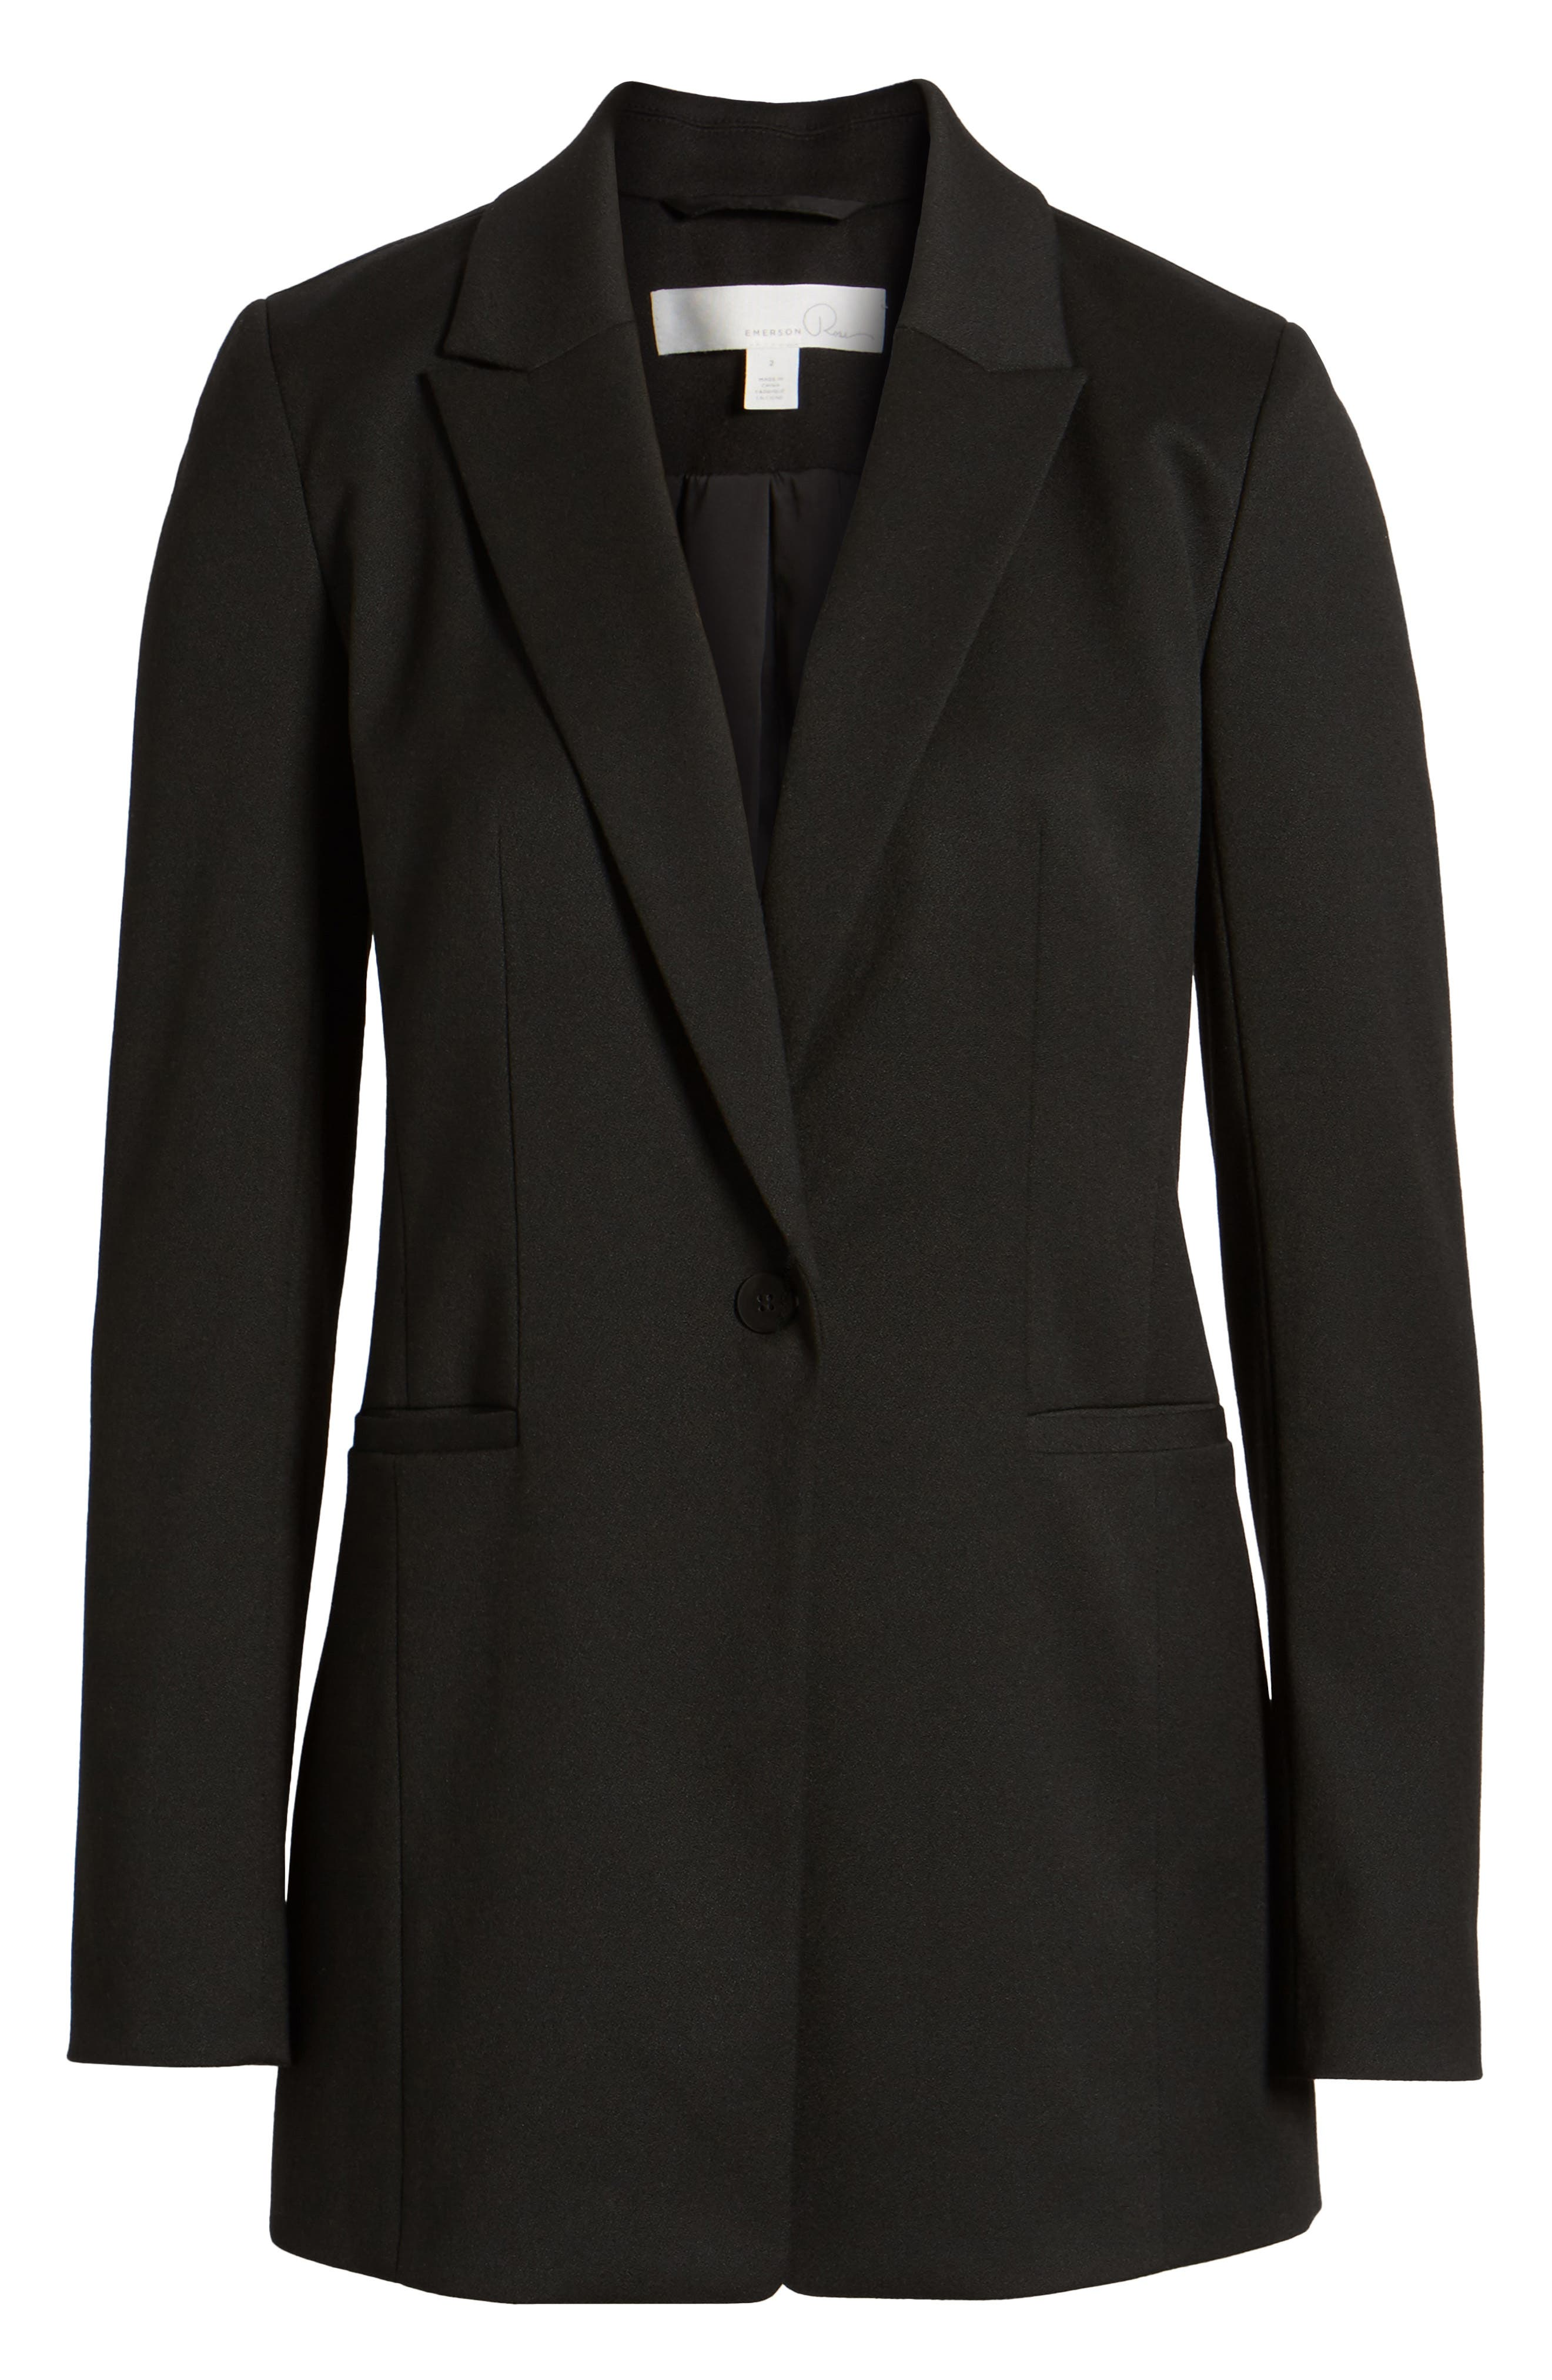 Stretch Crepe Suit Jacket,                             Alternate thumbnail 6, color,                             Black